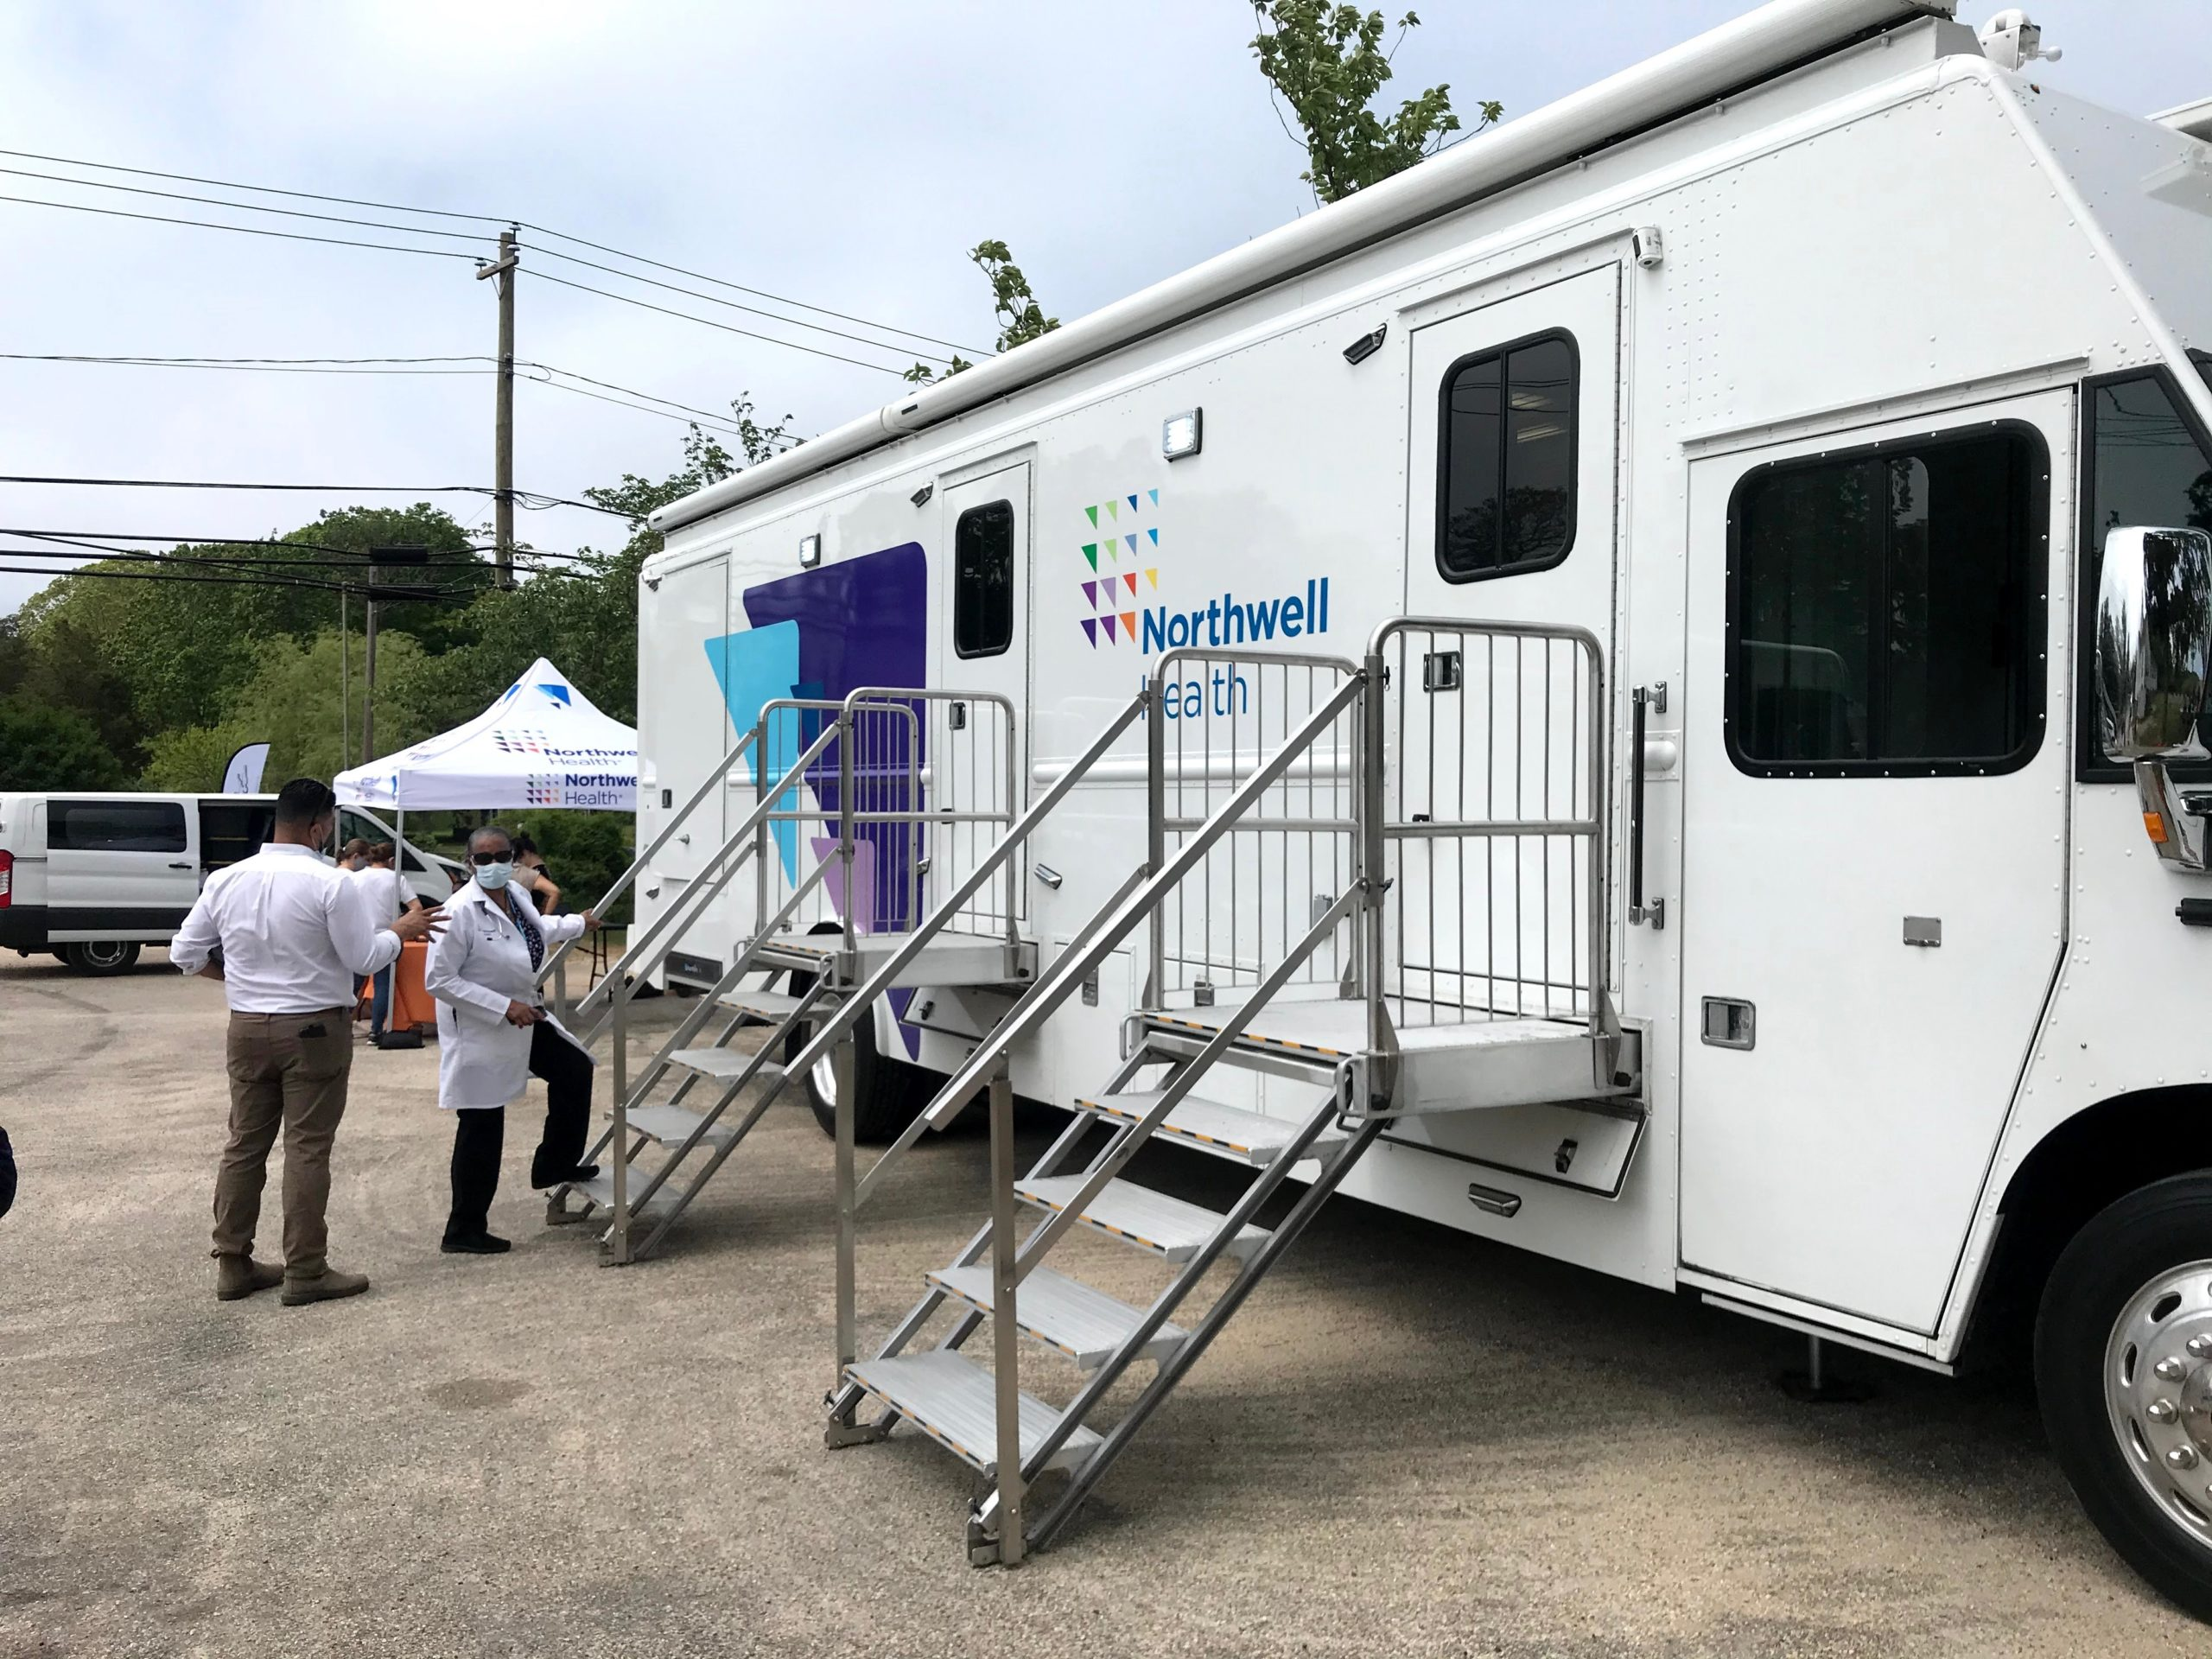 OLA of Eastern Long Island and Northwell Health conducted a vaccination POD at the Springs Food Pantry earlier this year in an effort to reach unvaccinated individuals in the Latino immigrant community.